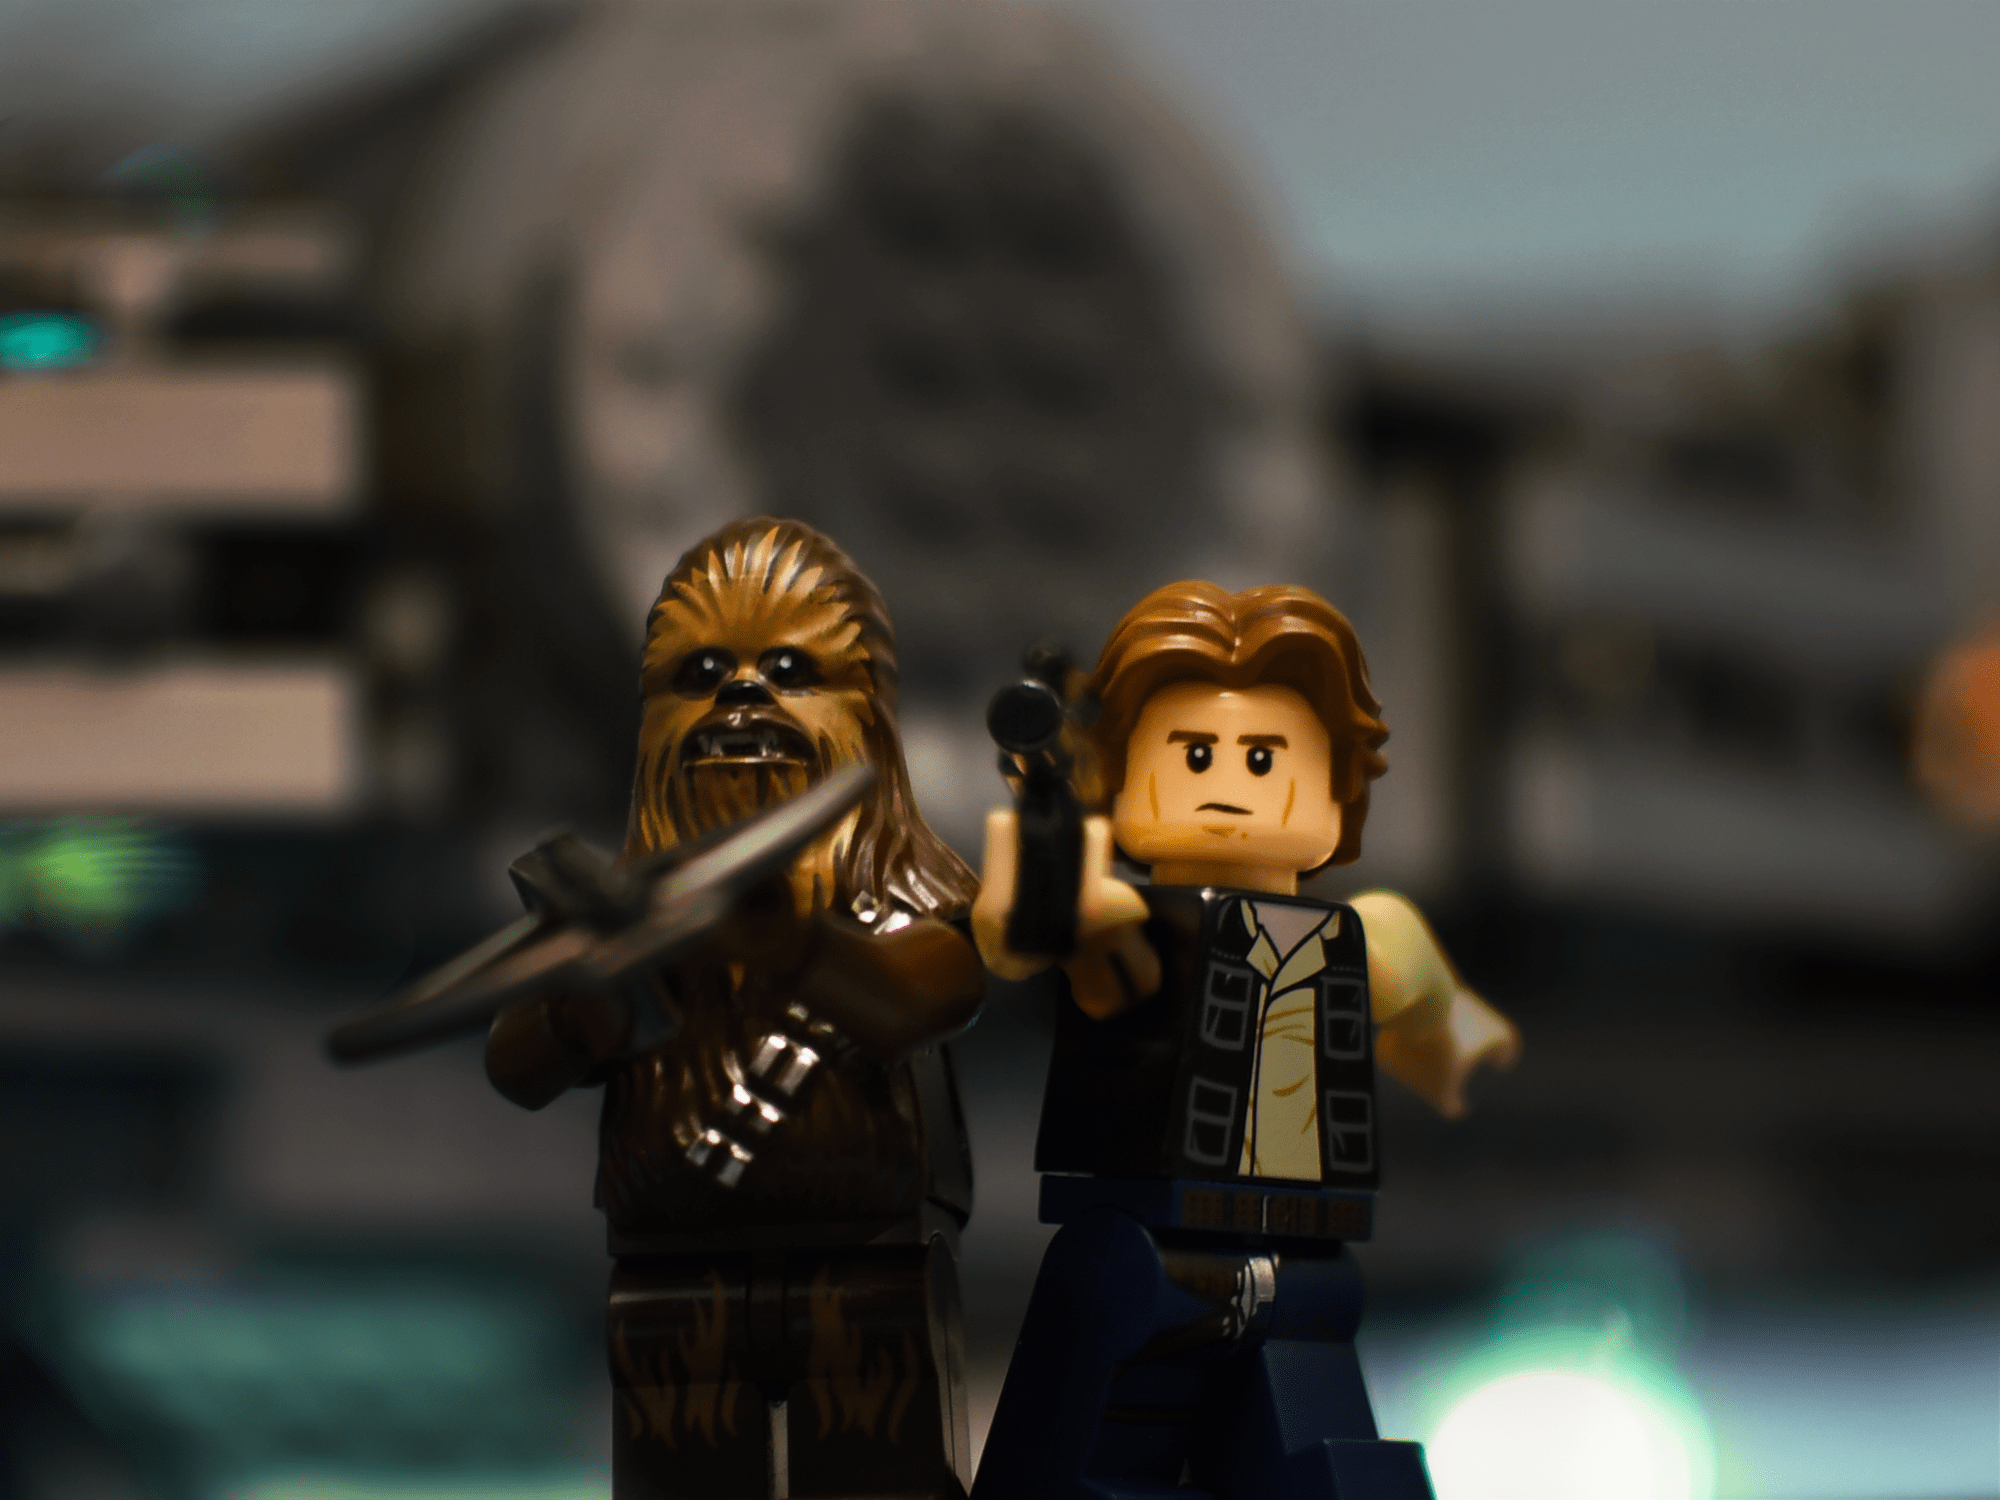 A look at every Lego Wookie minifigure released so far: 2000-2019.